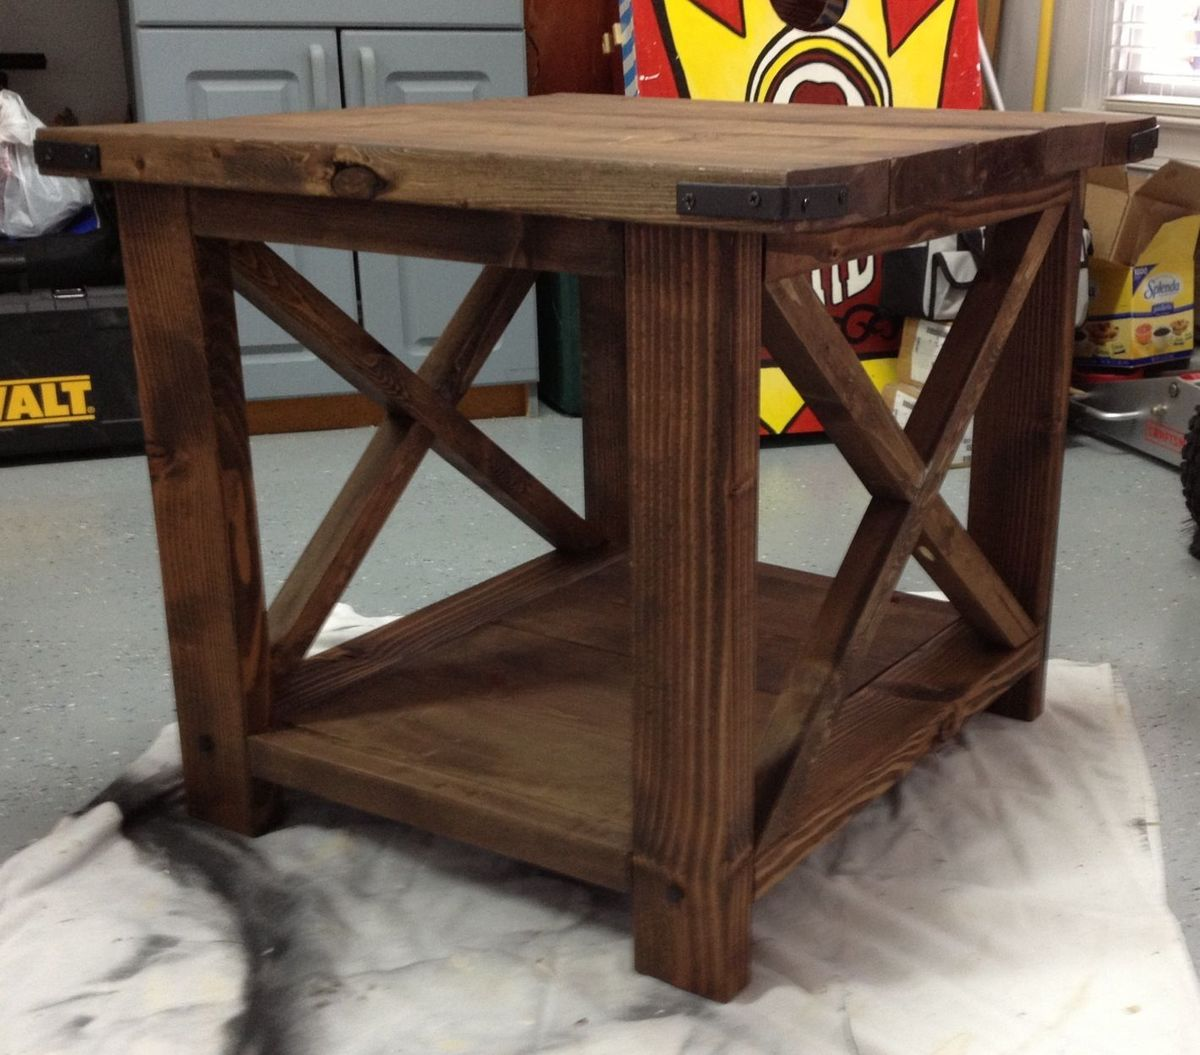 Ana white our rustic end table diy projects our rustic end table solutioingenieria